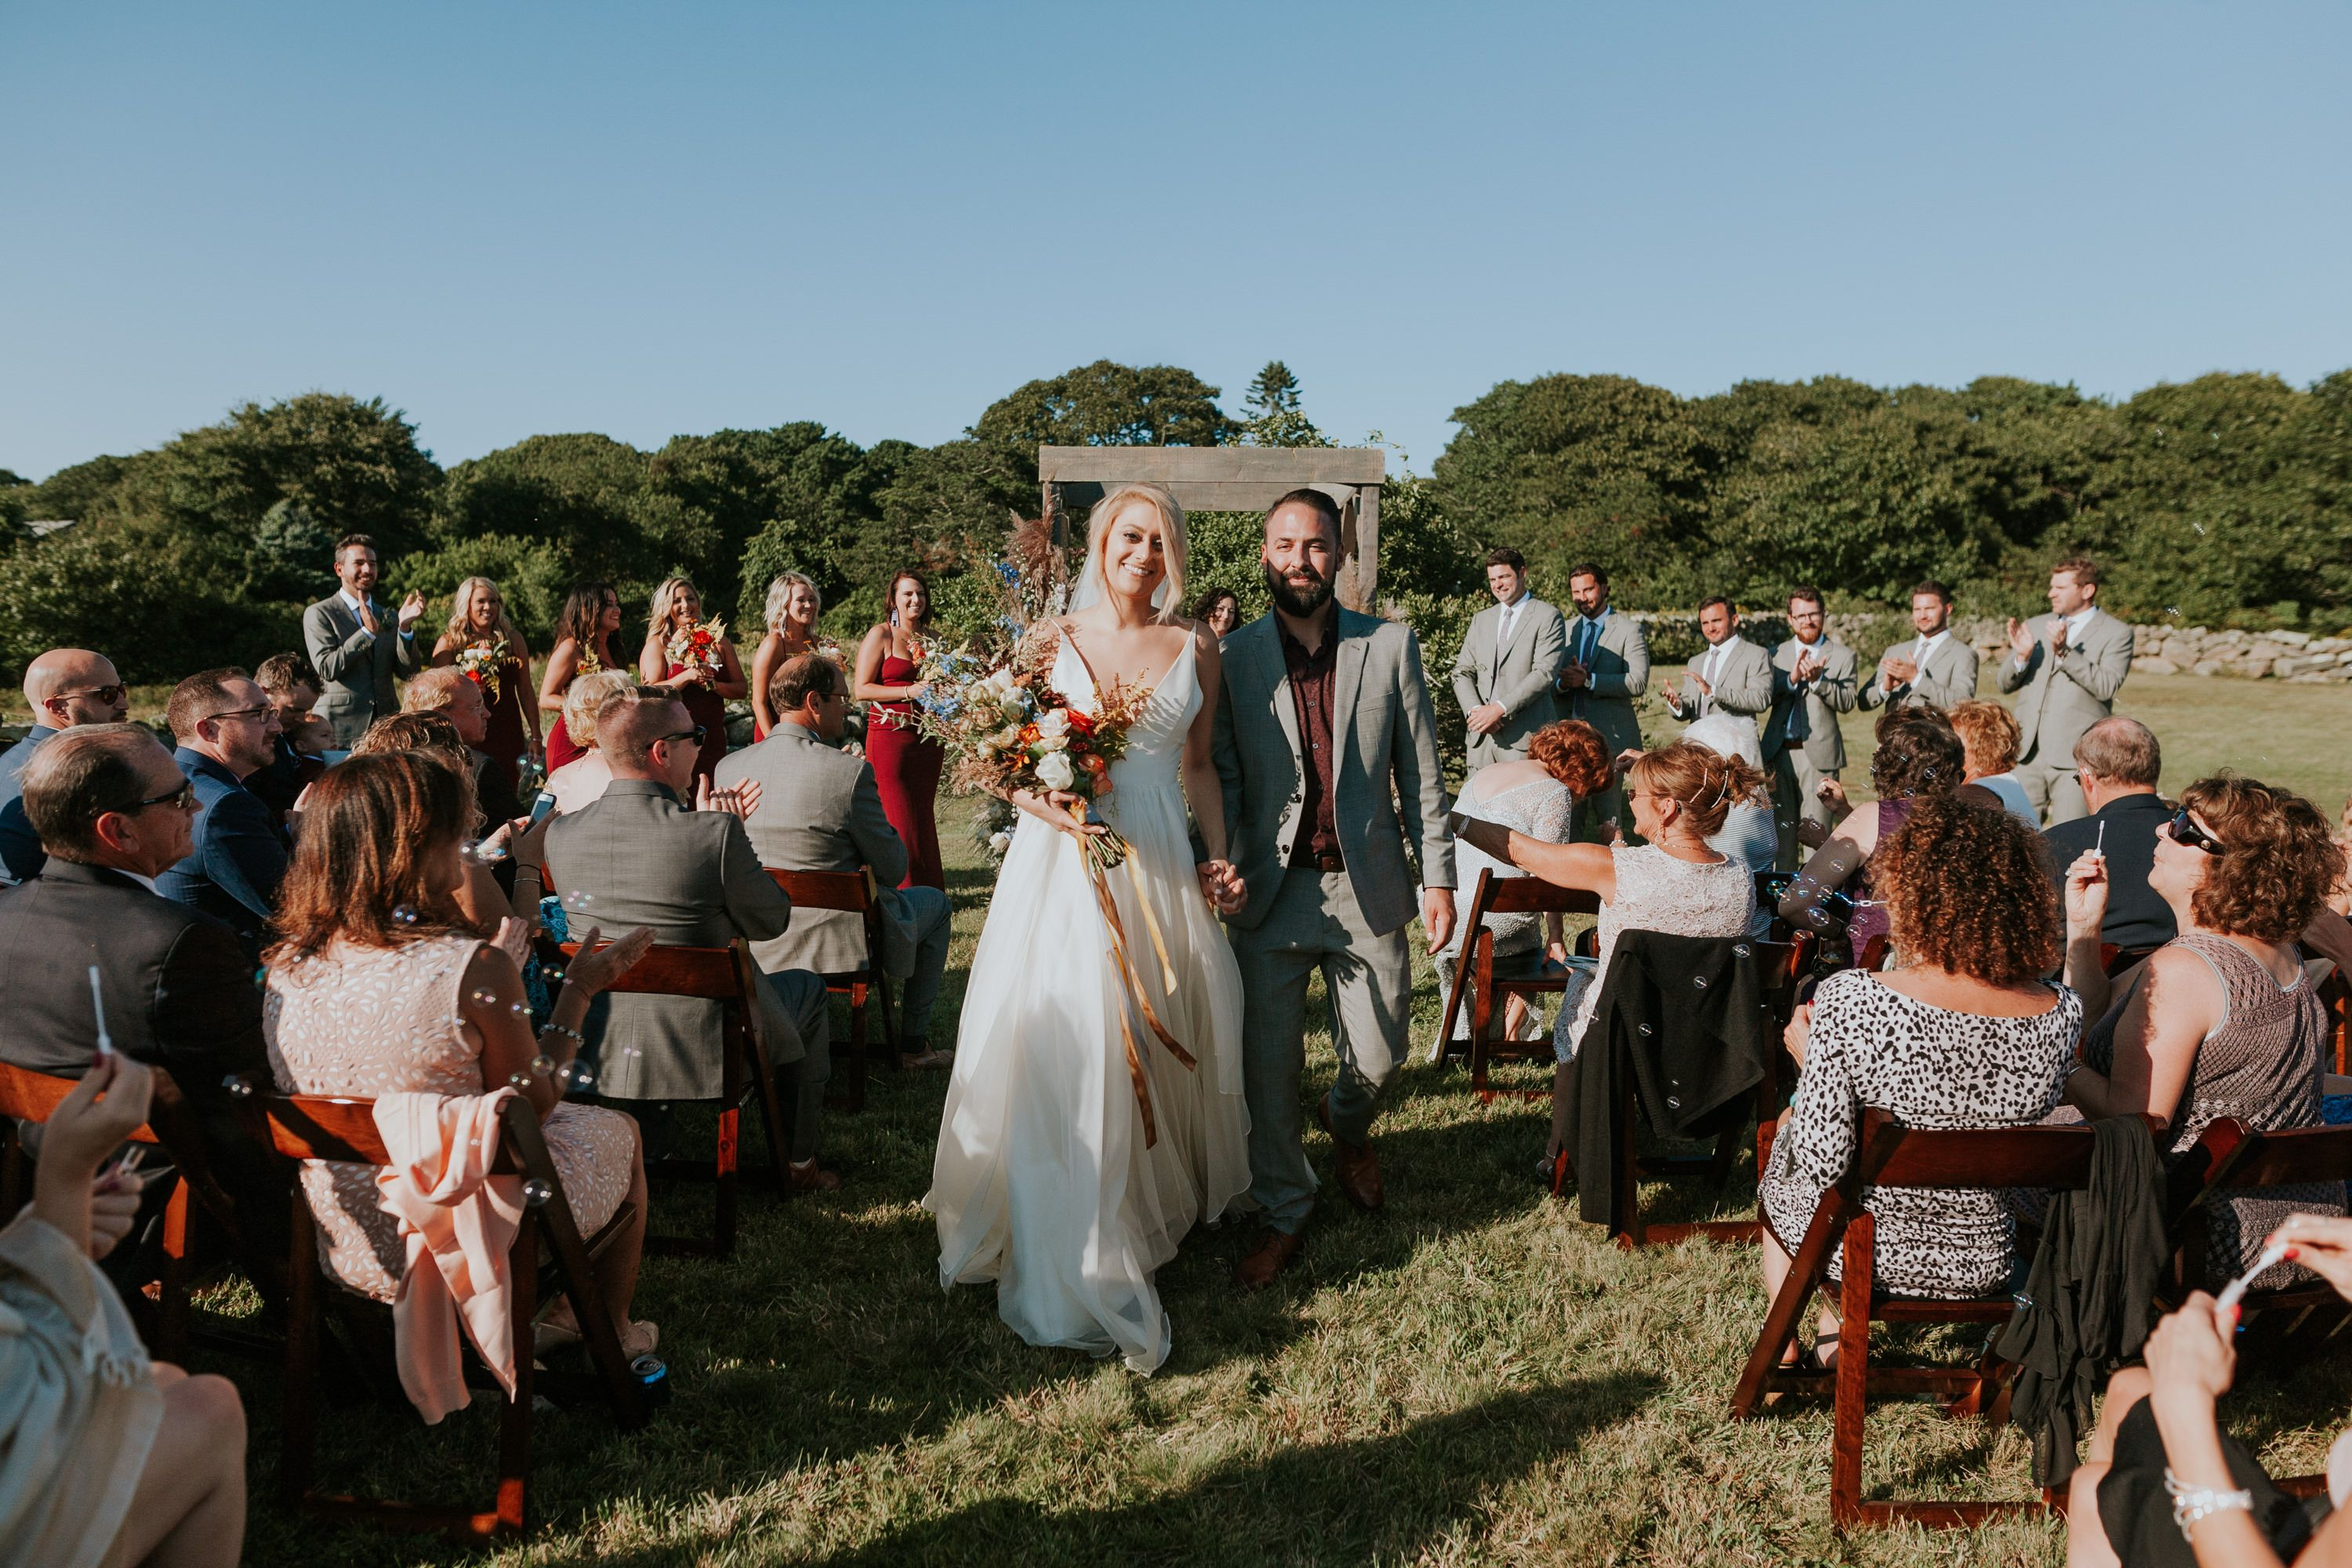 Sarah + Zach | Martha's Vineyard Wedding